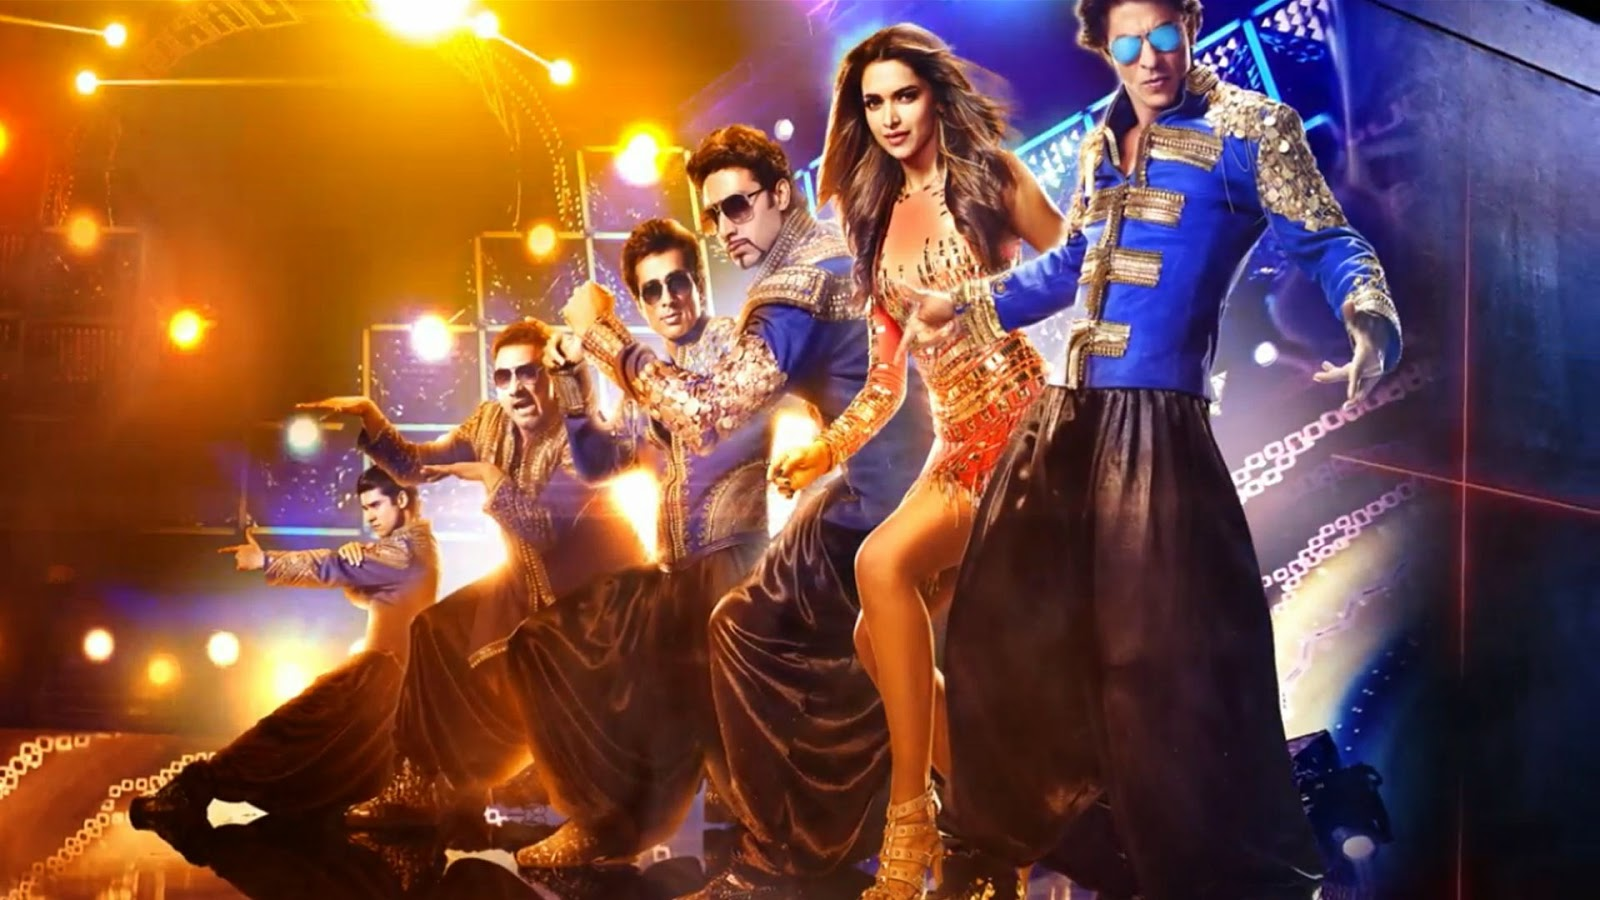 Movie happy new year awesome sexy poster 2014 (Actor and Actress Hd Wallpaper)